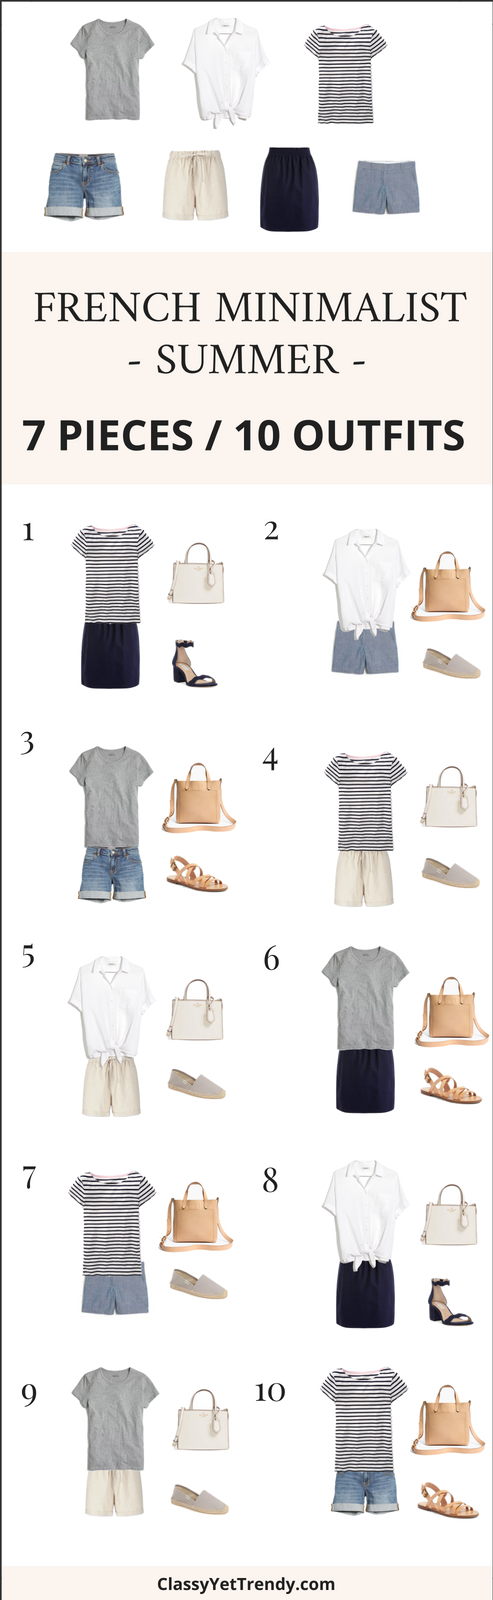 7 Pieces 10 Outfits - French Minimalist Summer Style